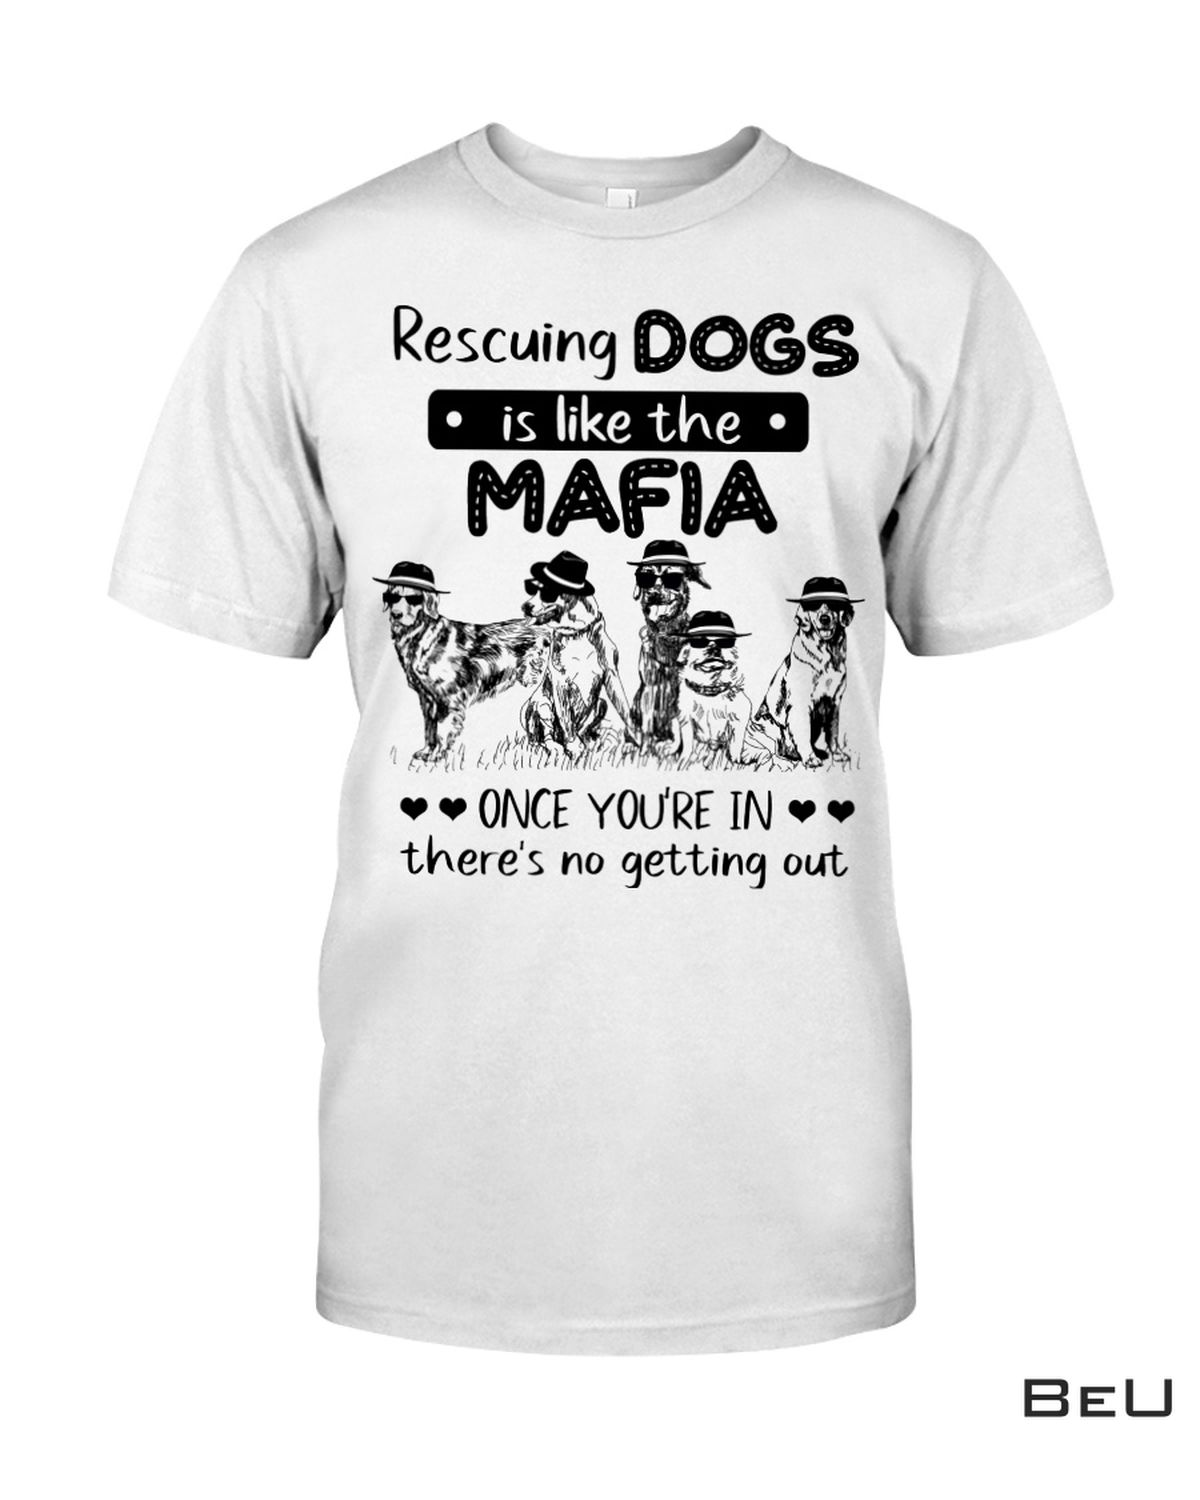 Rescuing Dogs Is Like The Mafia Shirt